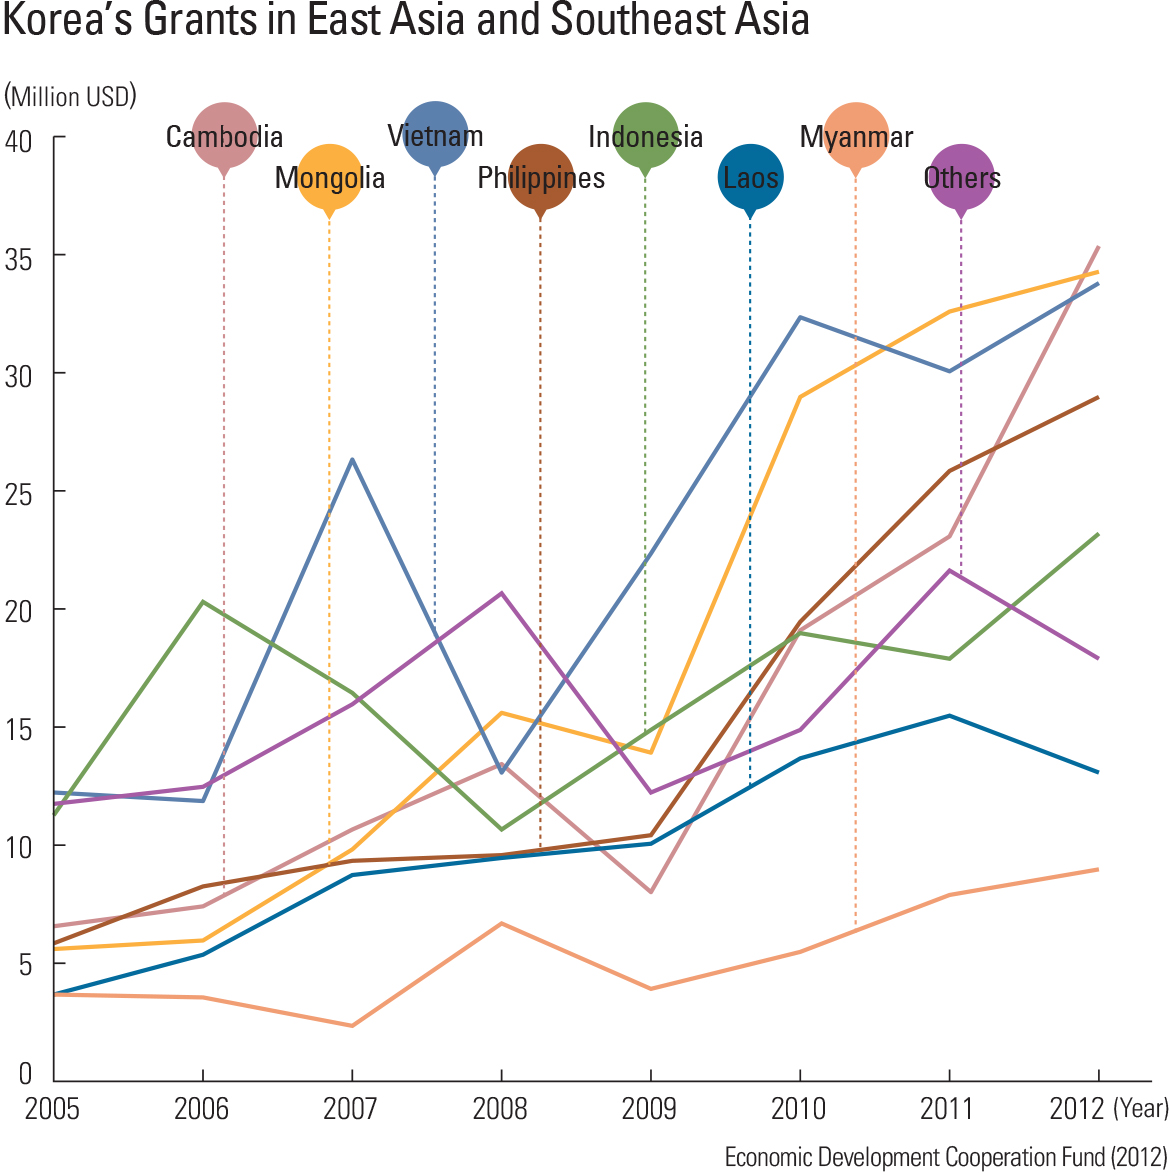 Korea's Grants in East Asia and Southeast Asia